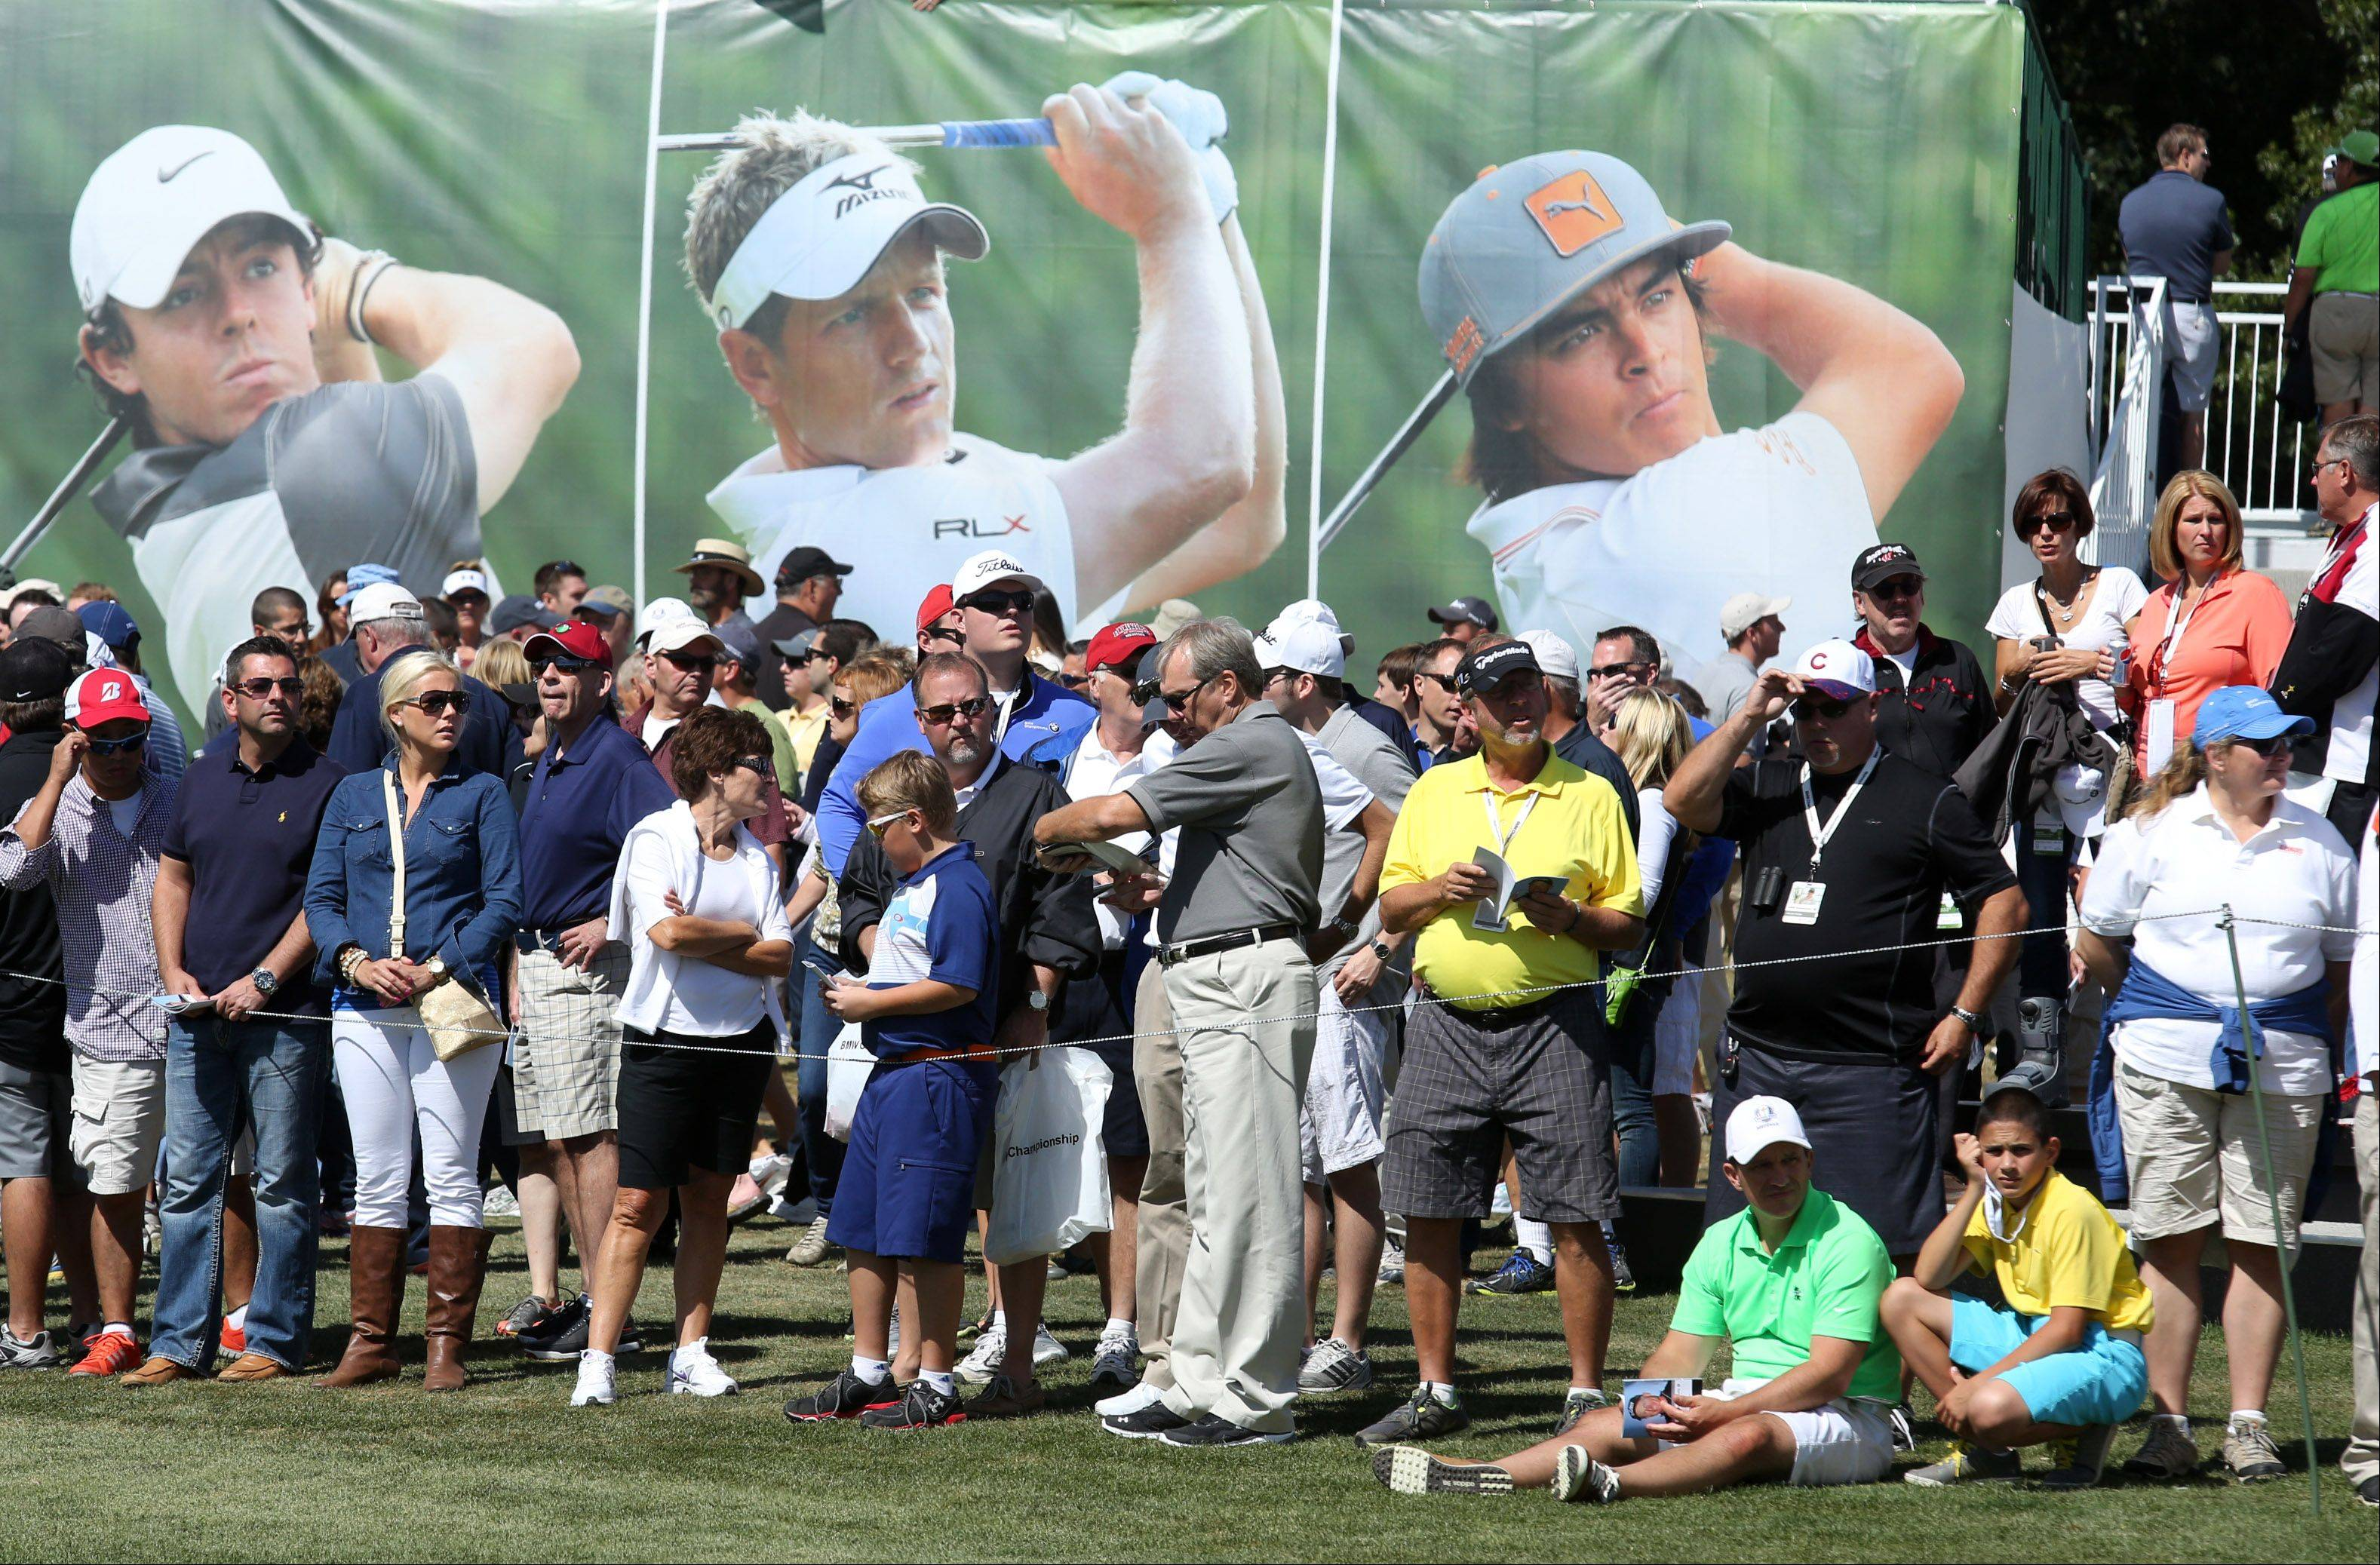 Fans wait for golfers to tee off on the first hole near a leader board during the third-round of the BMW Championship at Conway Farms Golf Club in Lake Forest on Friday.